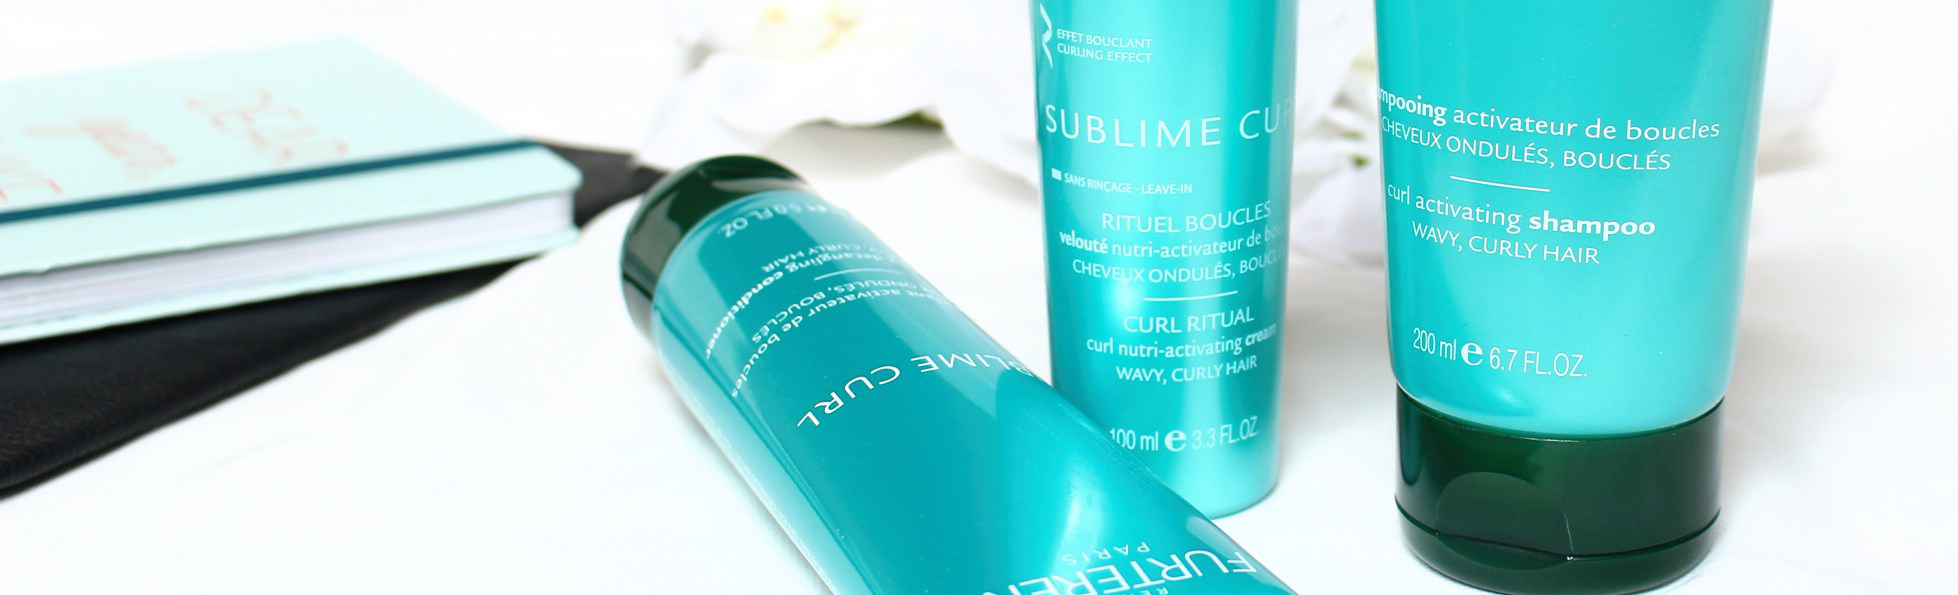 Rene Furterer Sublime Curl Range - The Rough Hair Ritual